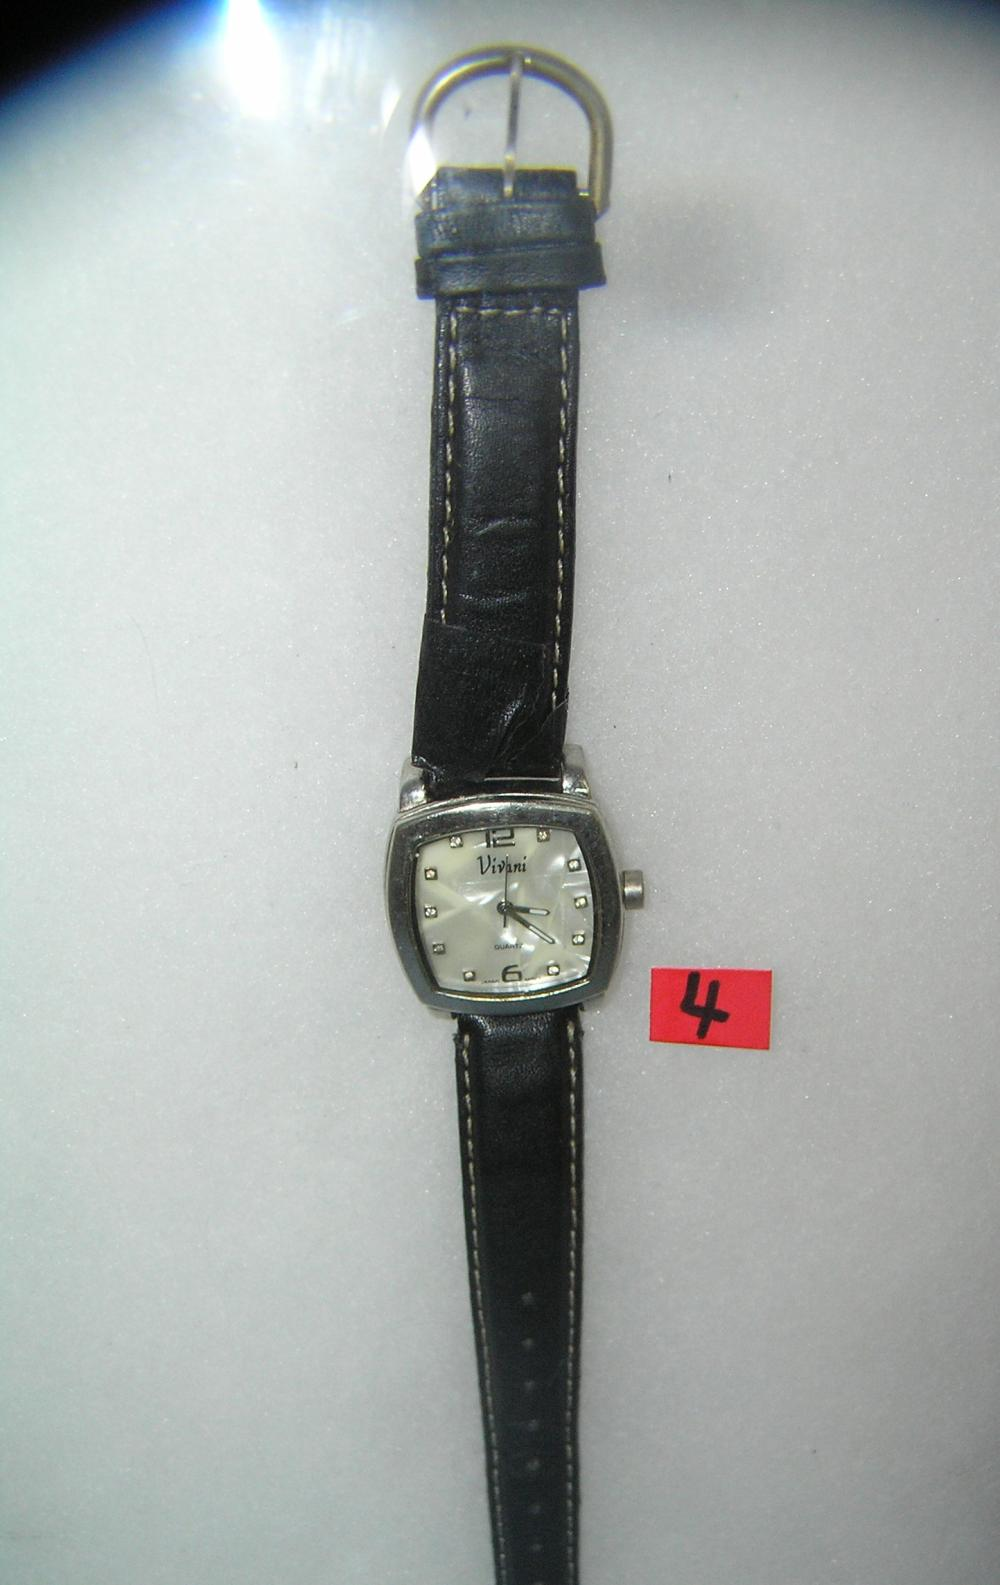 FASHION STYLE WRIST WATCH WITH BLACK LEATHER BAND